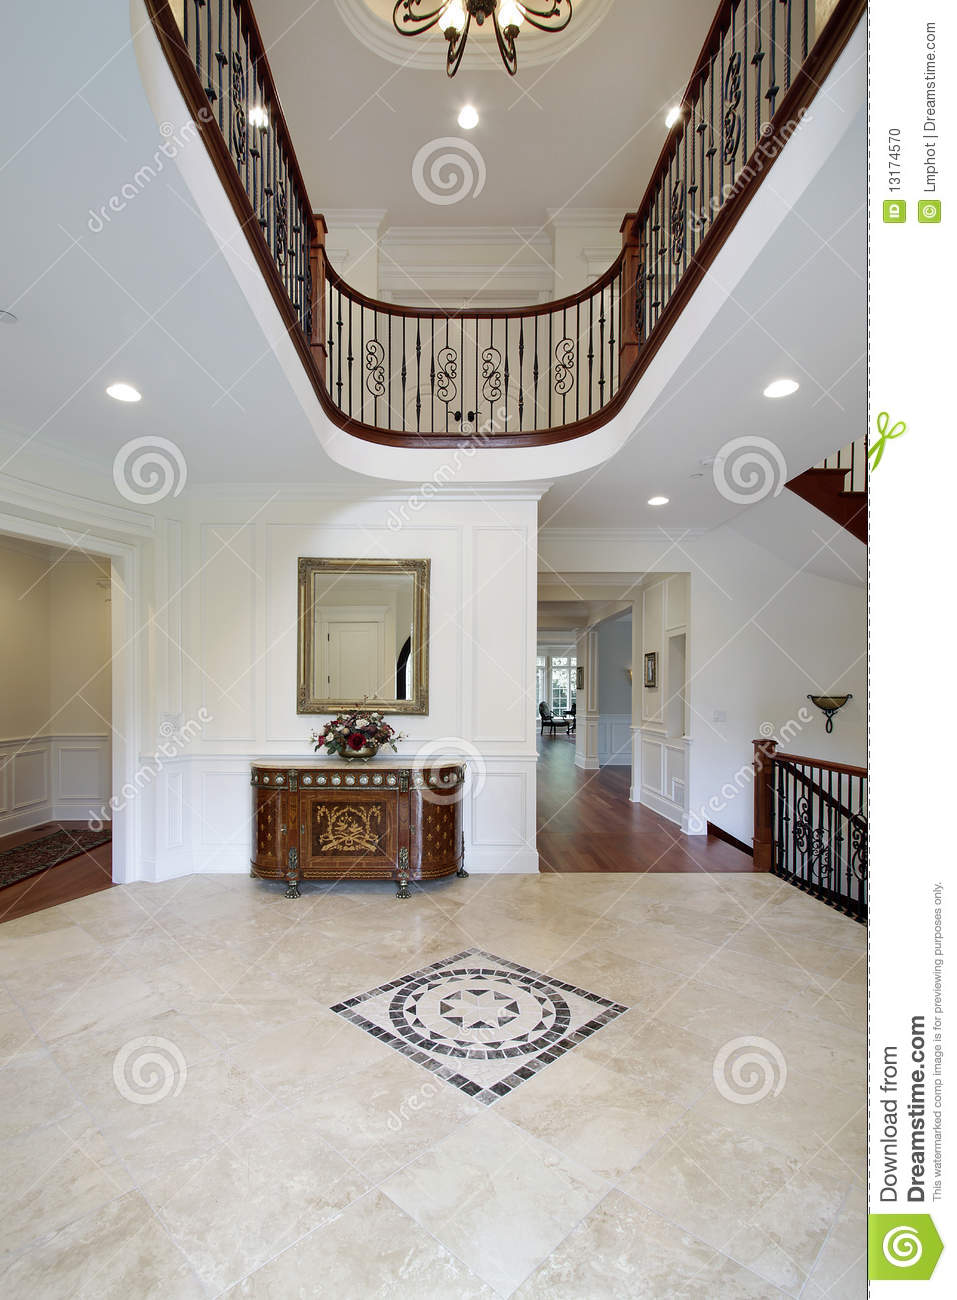 Foyer Clipart : Foyer with floor design stock photo image